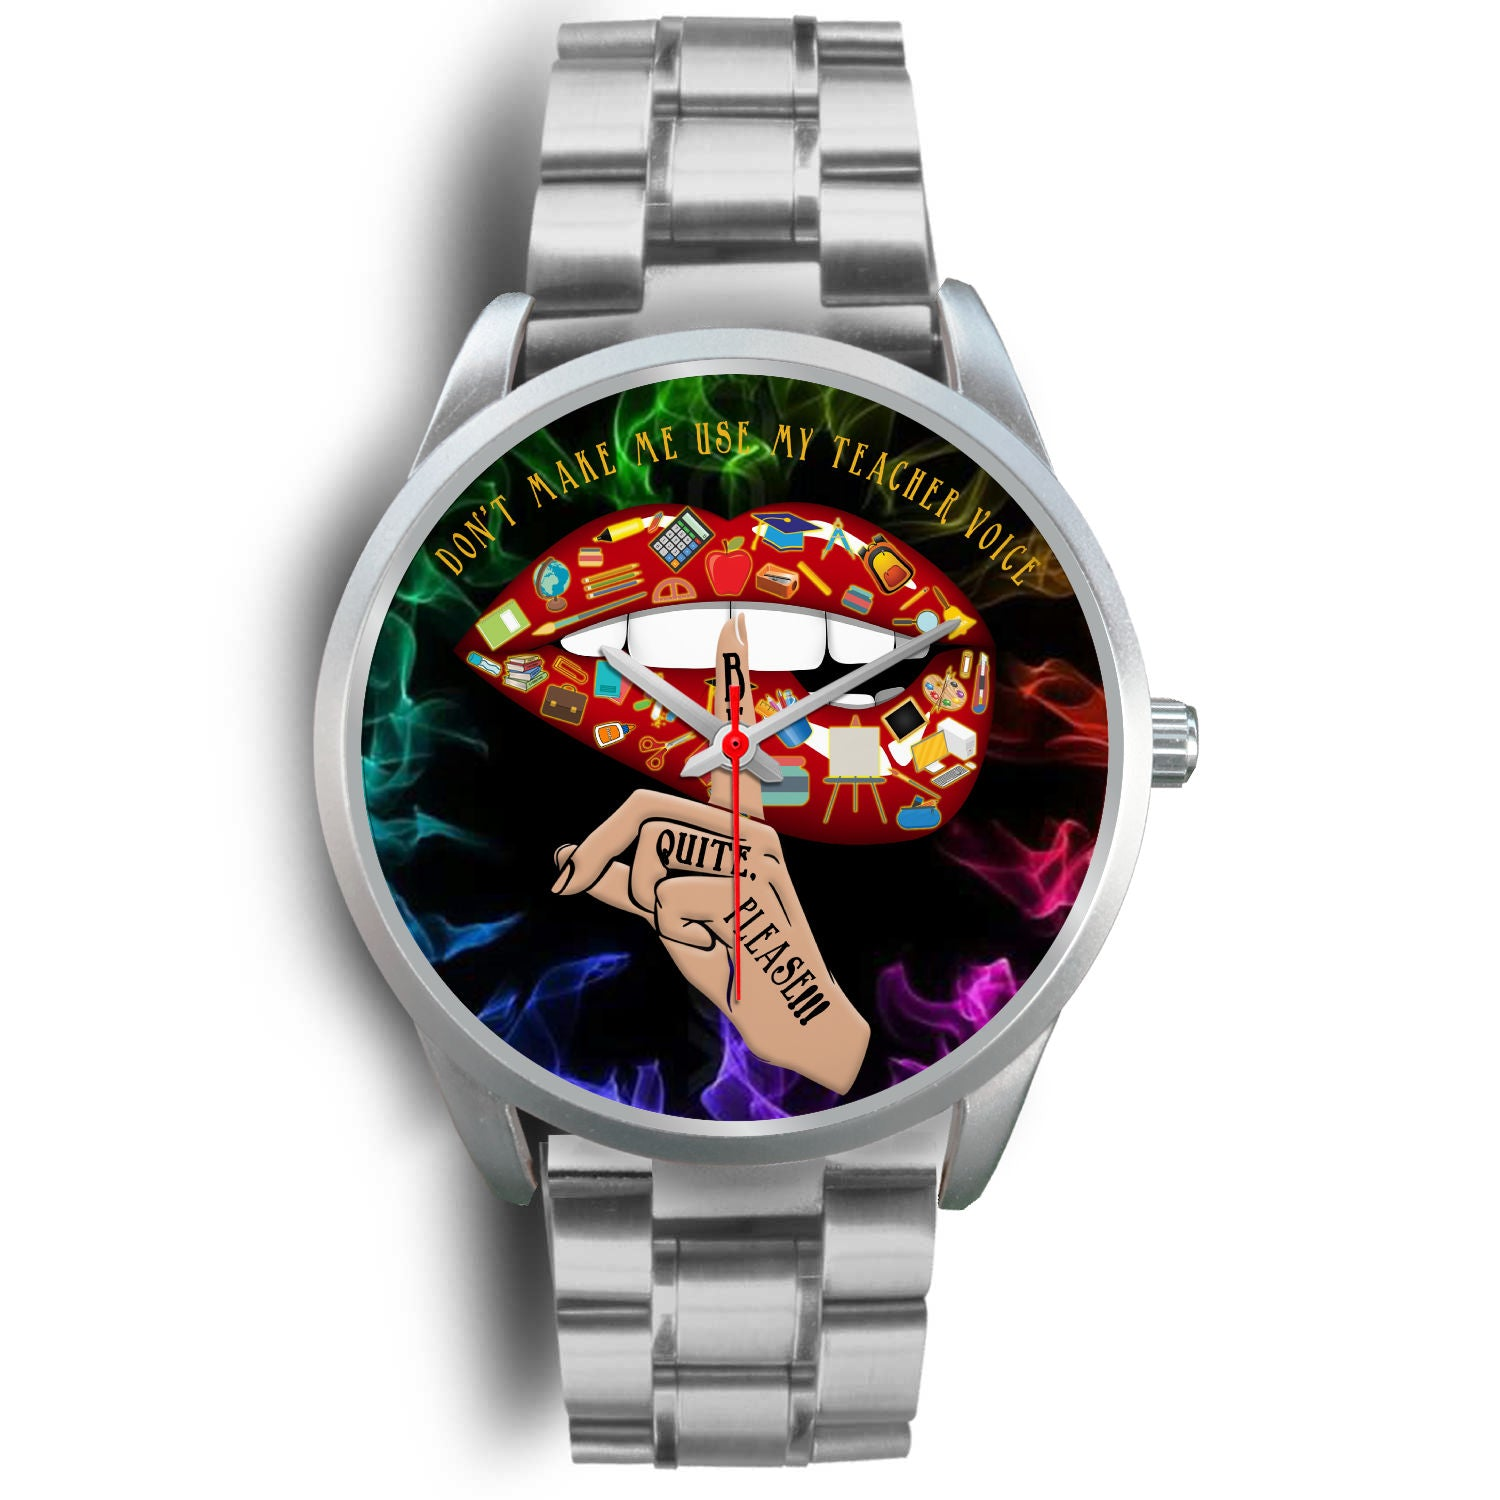 VIRA Sexy Lips Silver Stainless Steel Watch For Awesome Teachers